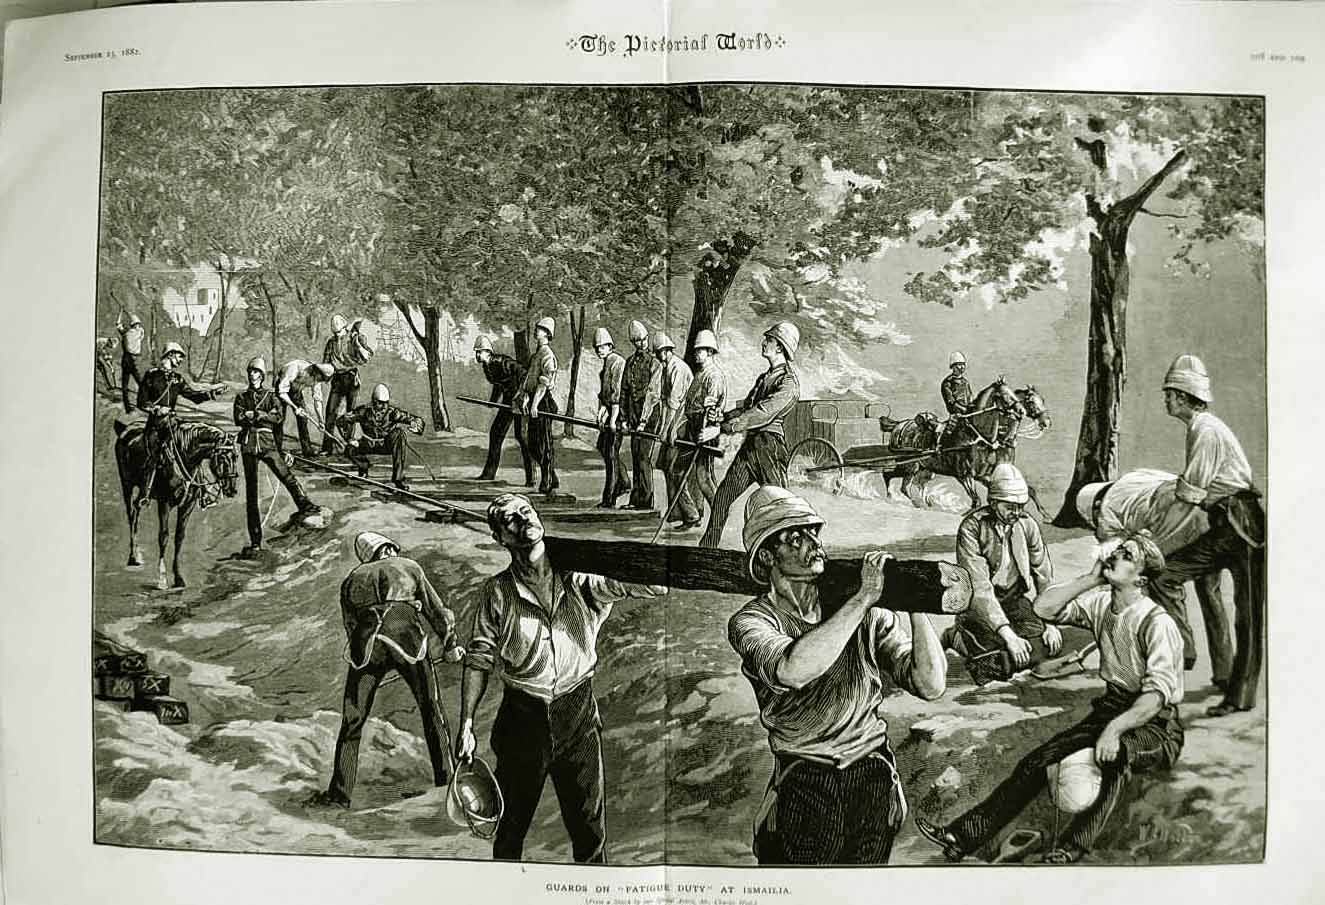 [Print 1882 Soldiers Guards Fatigue Duty Ismailia War Weapons 390Tn749 Old Original]